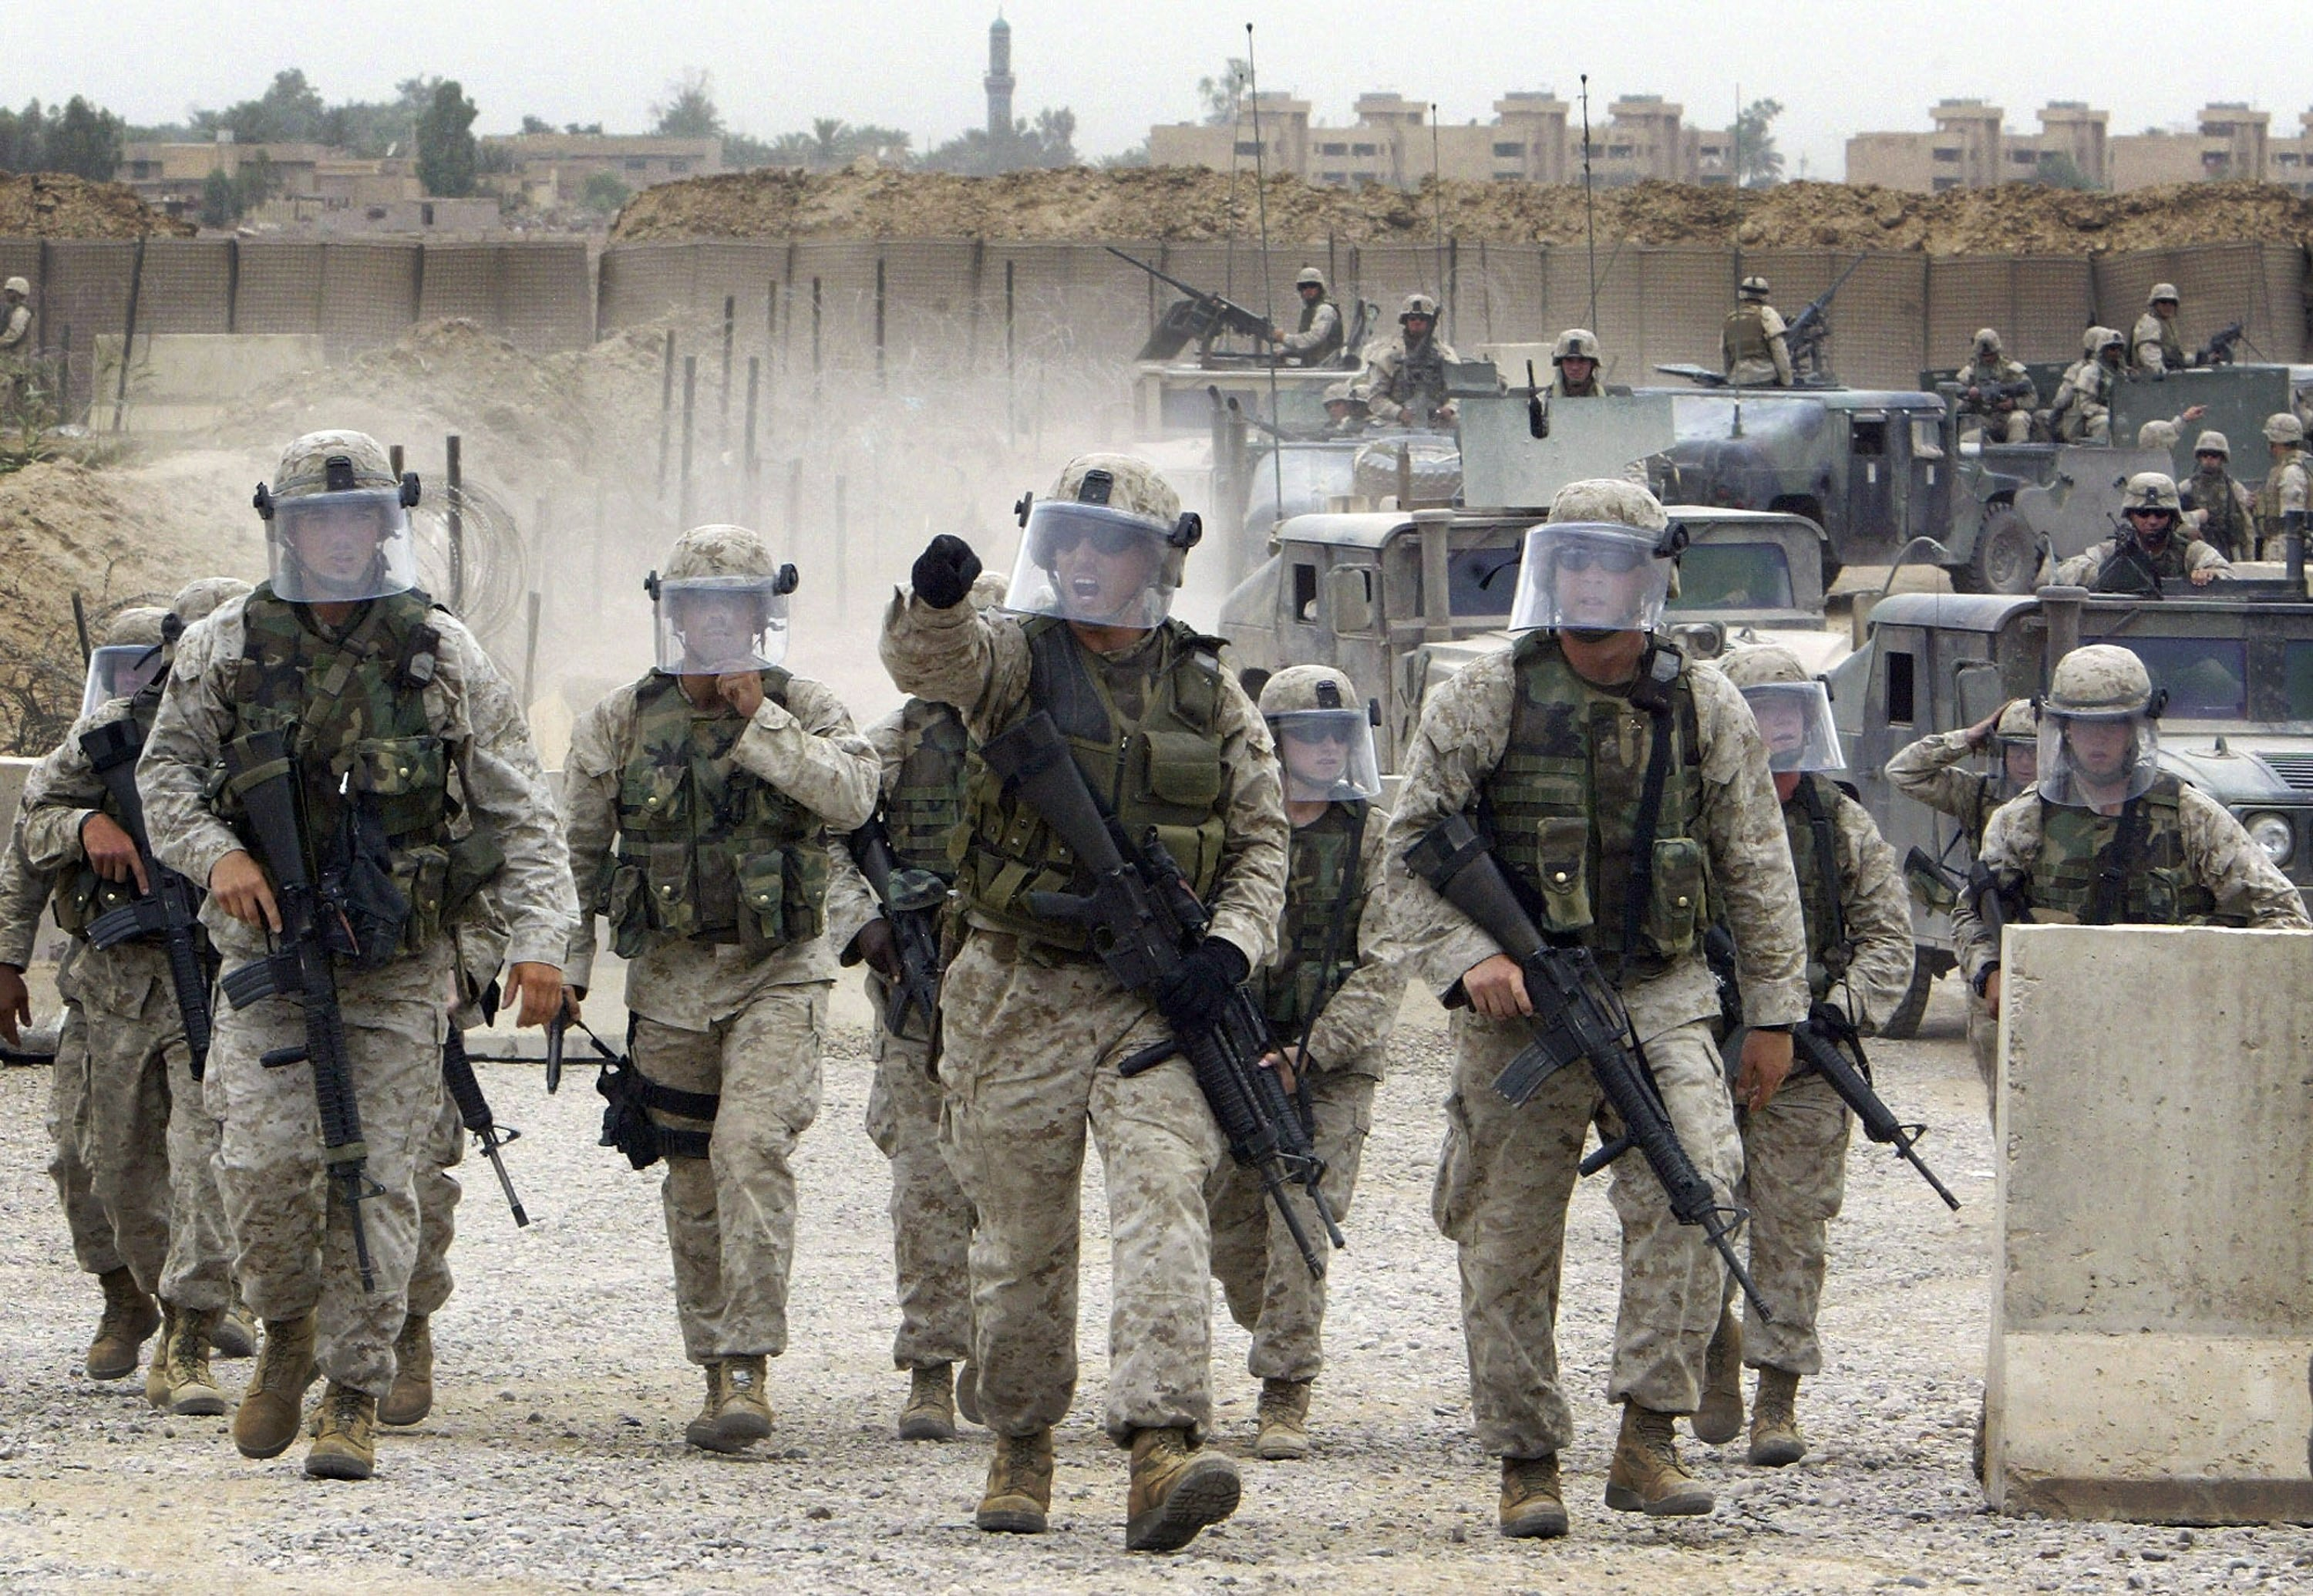 U.S. soldiers rush to escort a convoy of prisoners released from the Abu Ghraib facility in Baghdad, Iraq, May 28, 2004. (AP Photo)